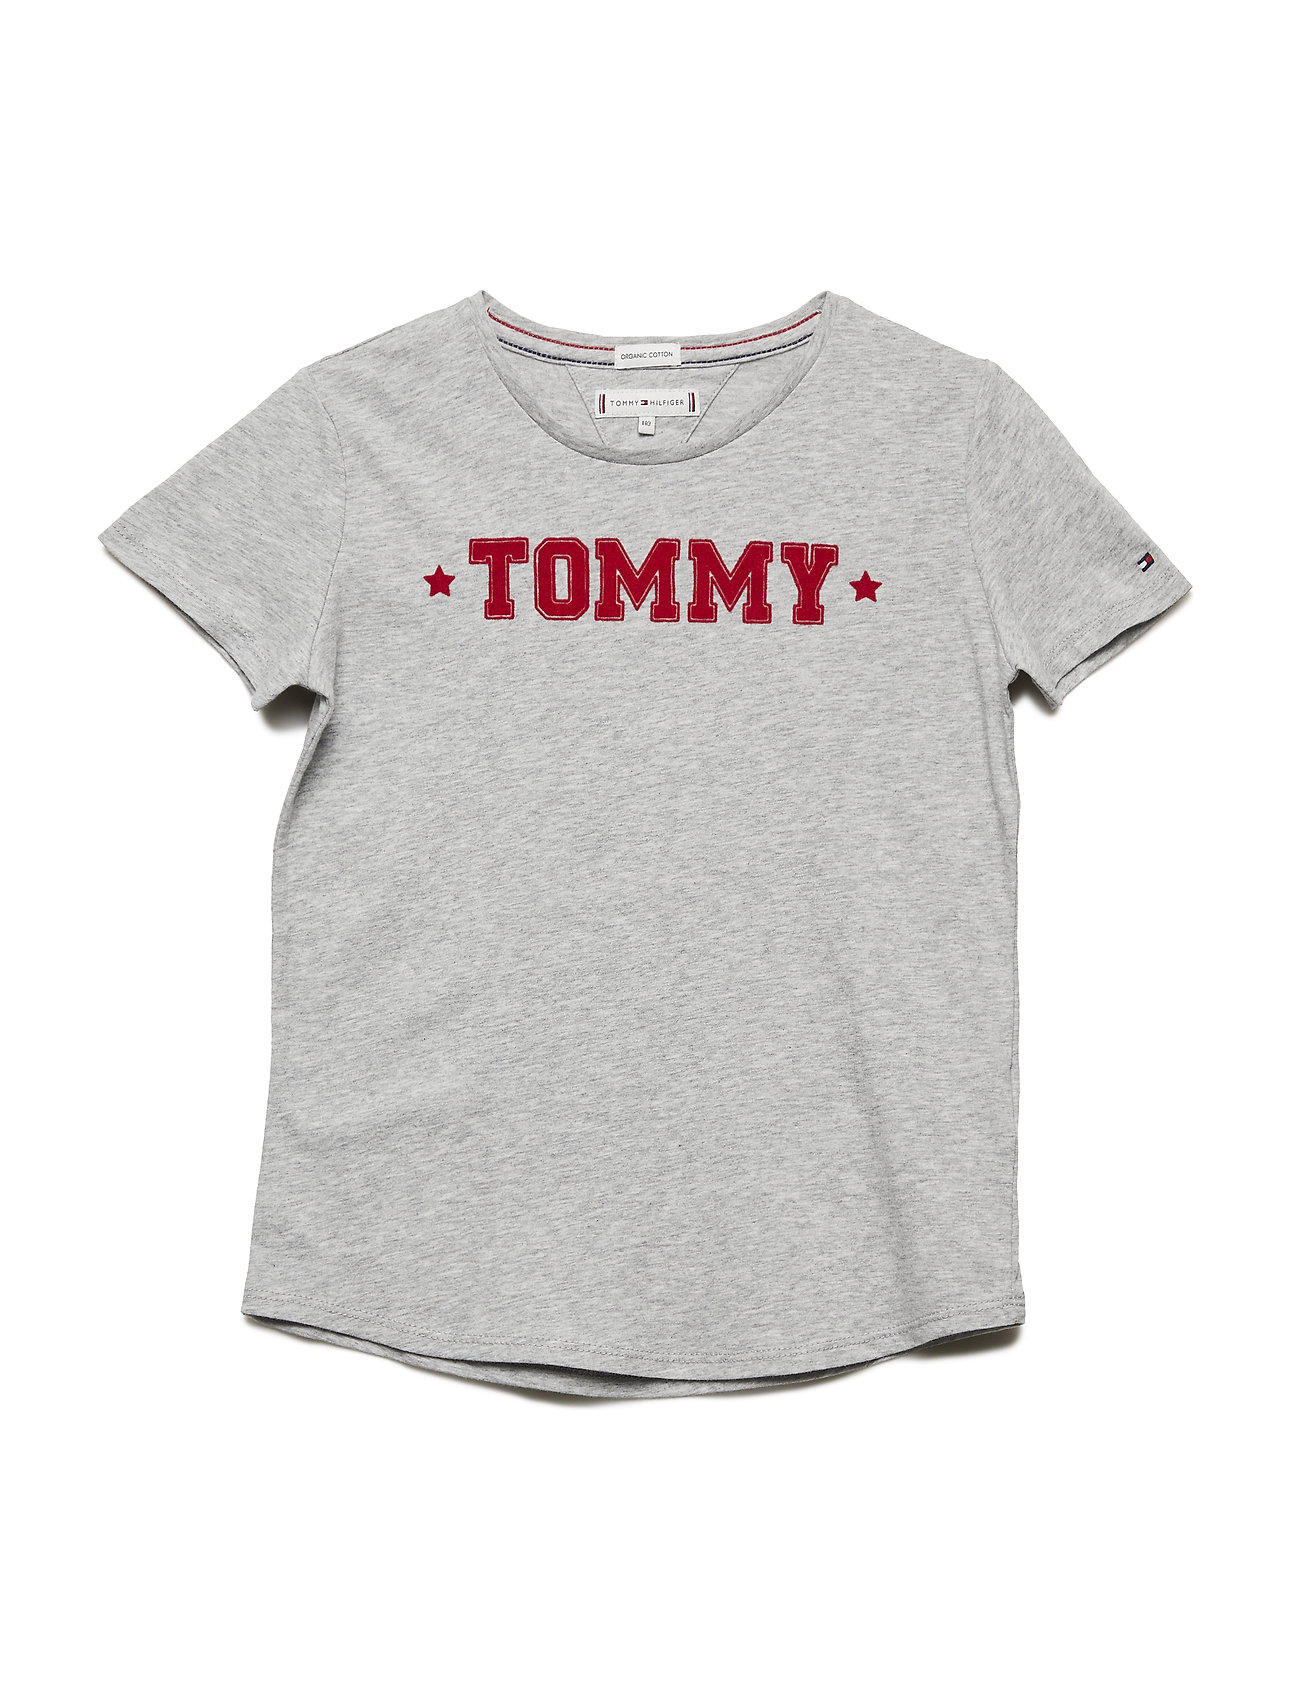 Tommy Hilfiger ESSENTIAL TOMMY TEE